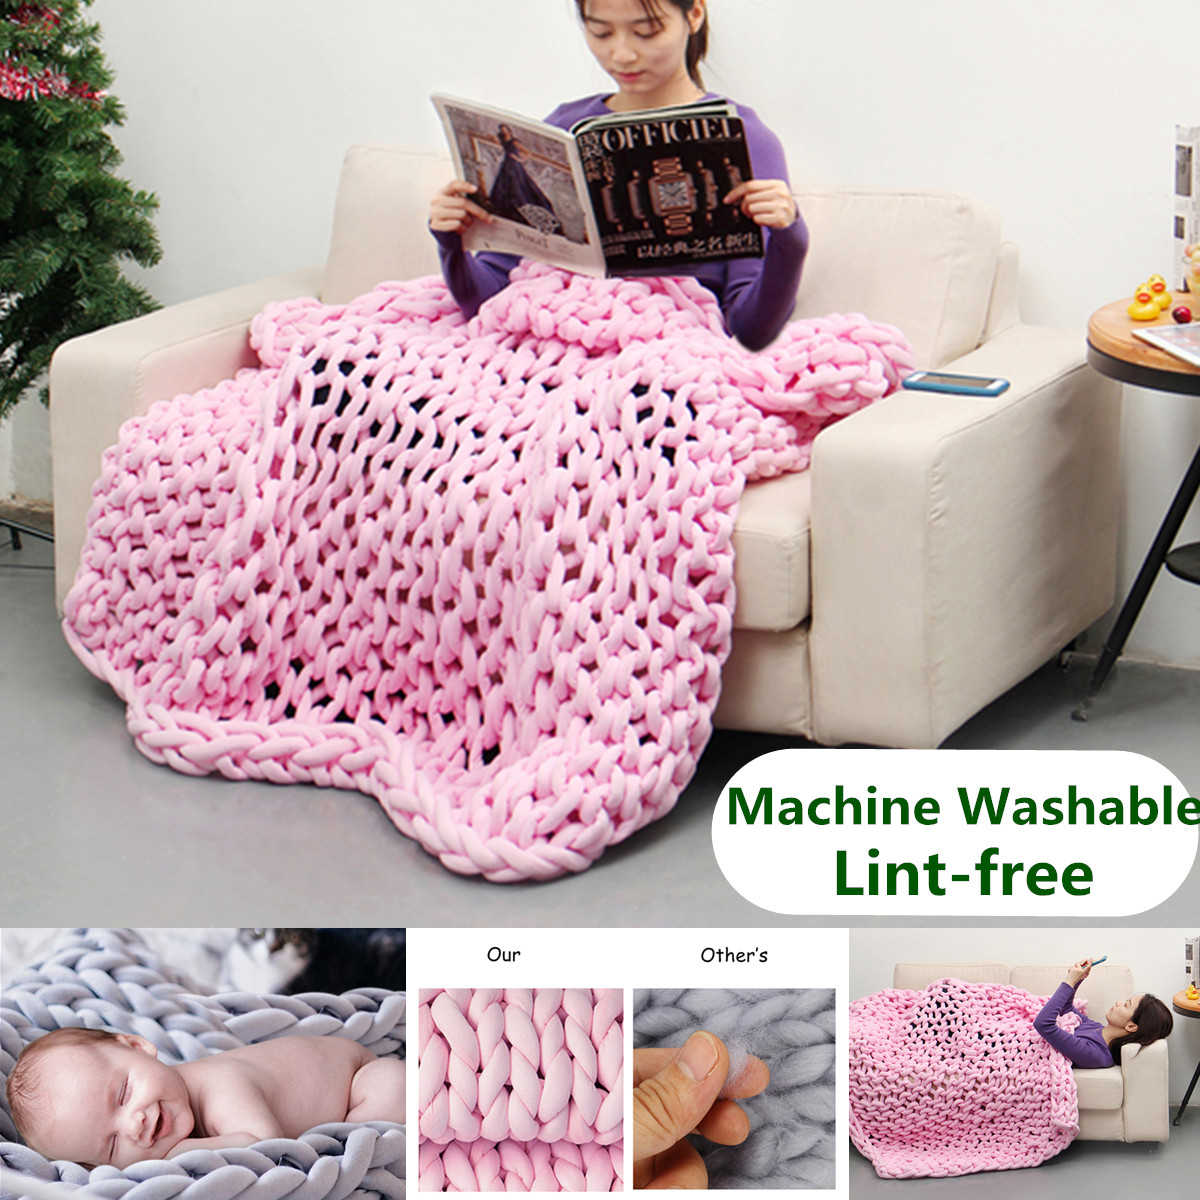 Machine Washable Hand-woven Chunky Cotton Soft Knitted Bedding Blanket Bulky Thick Bed Sofa Throw Rug Lint-free